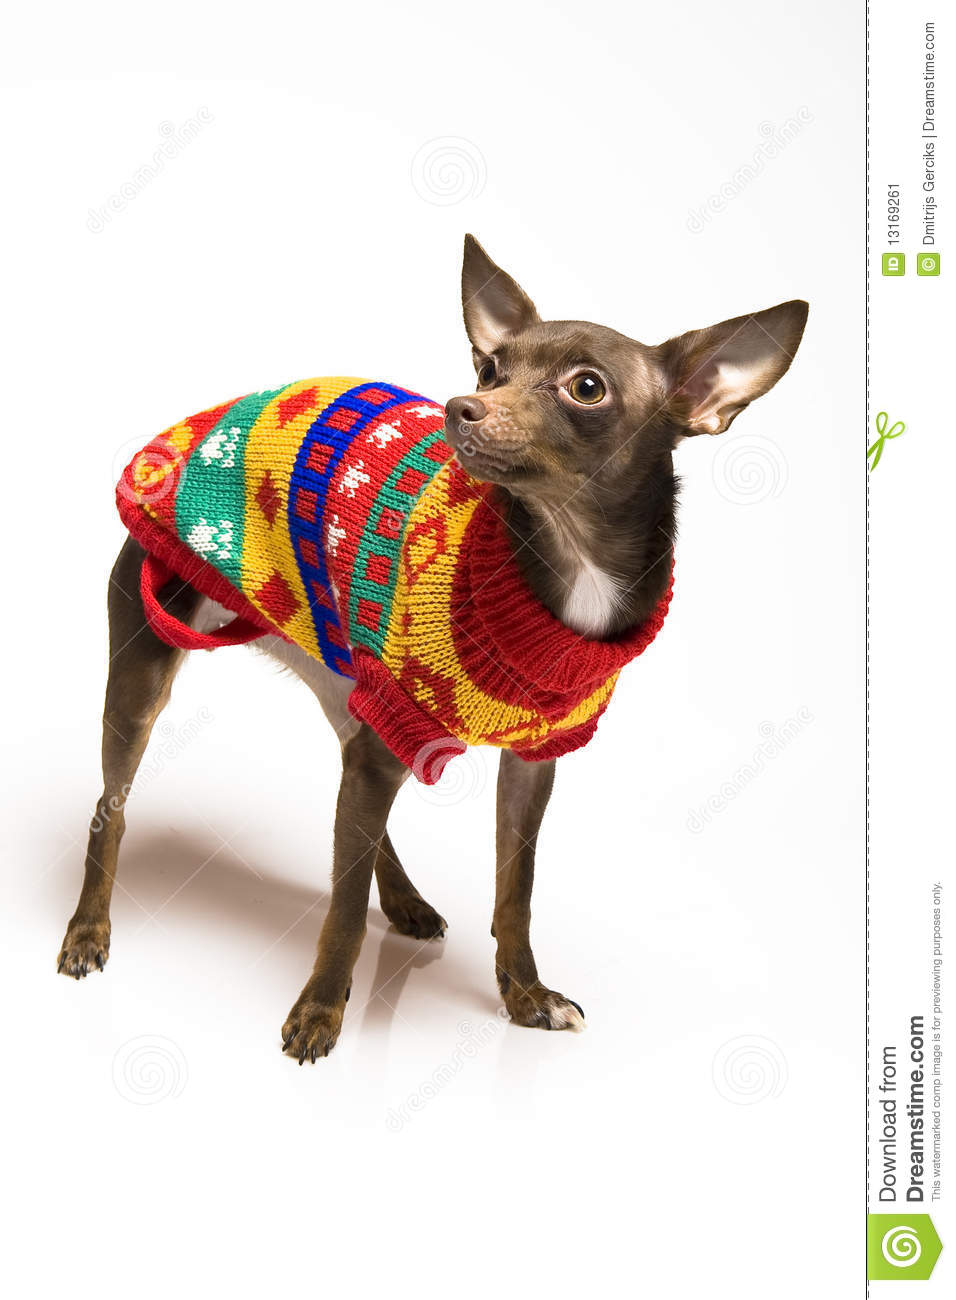 Toy Dog Clothes photo - 1